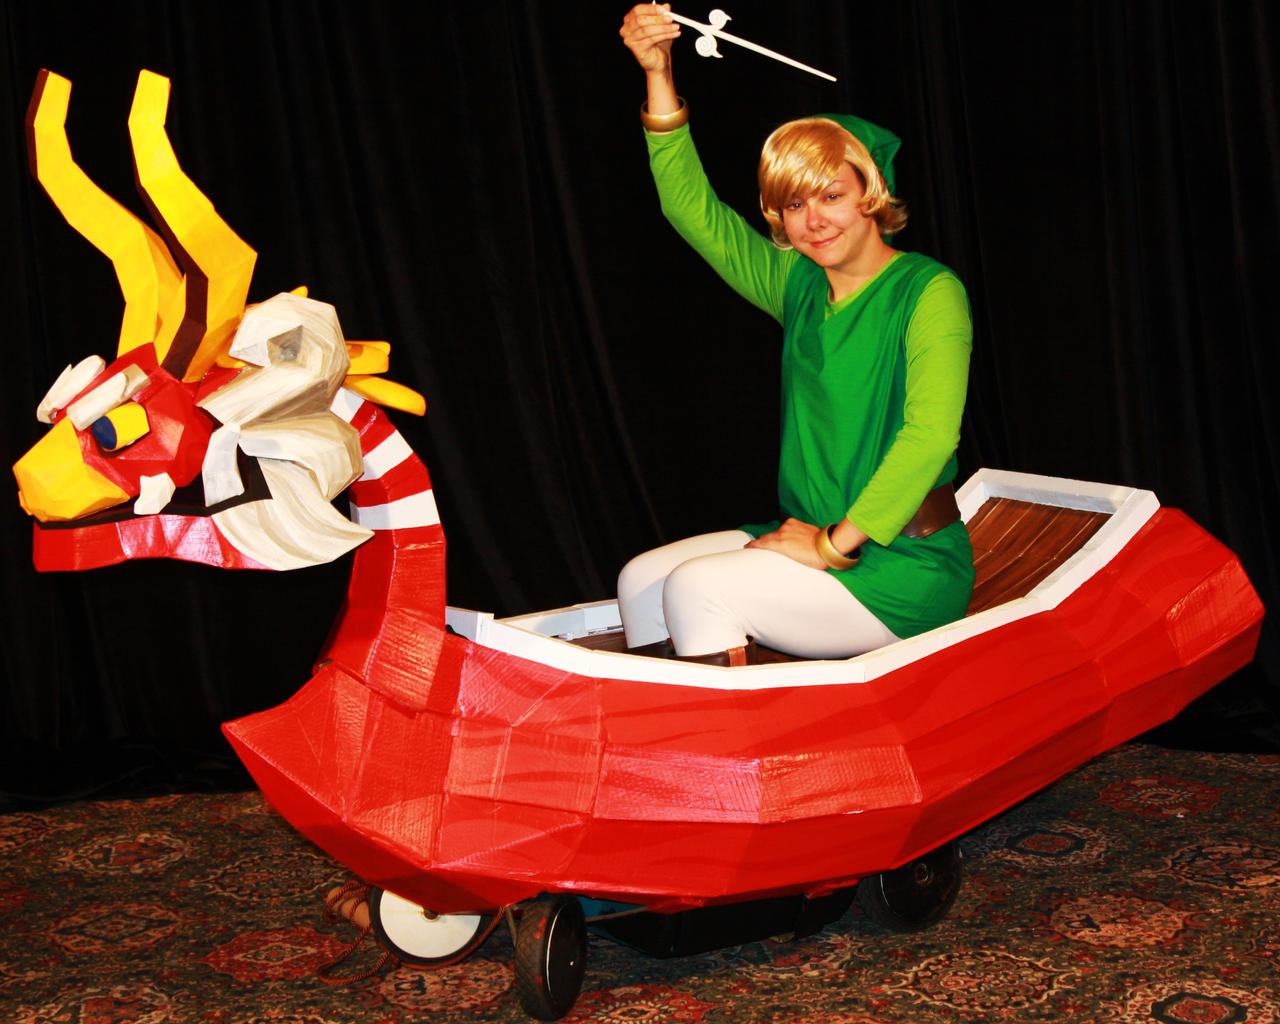 Wind Waker Link 2 of 4 by turpinator77